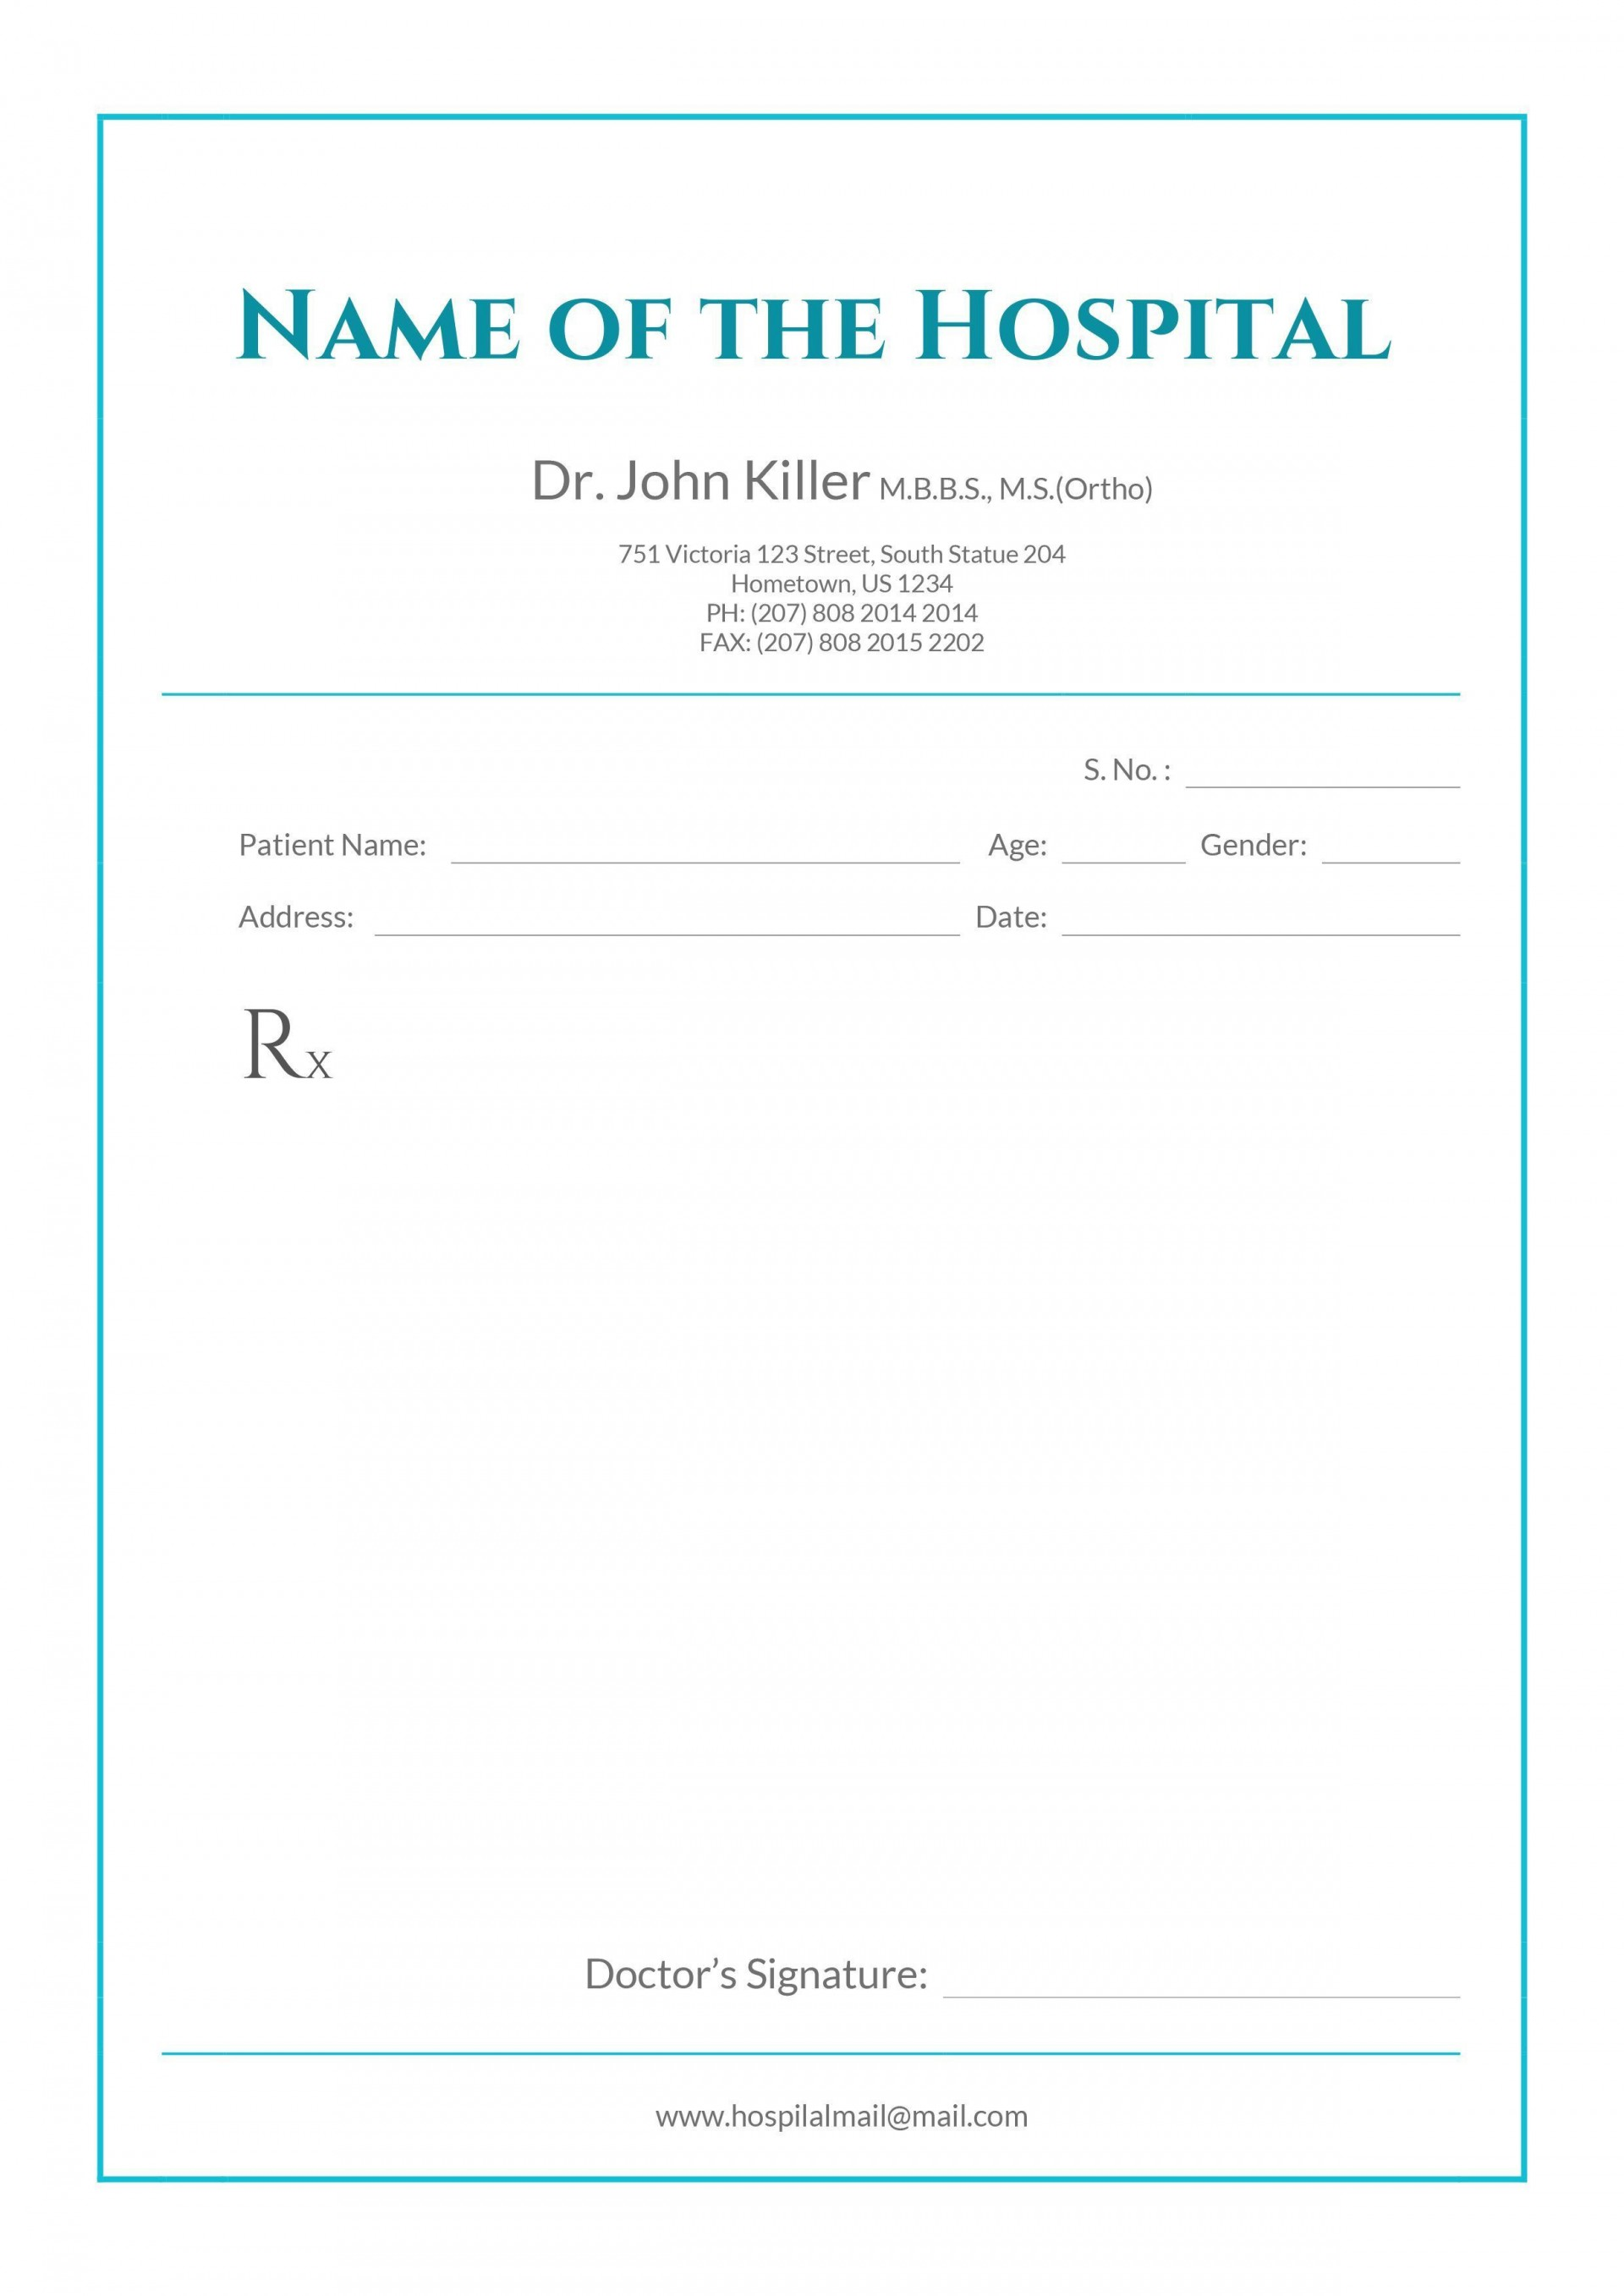 002 Beautiful Doctor Letterhead Format In Word Free Download High Resolution  Design1920